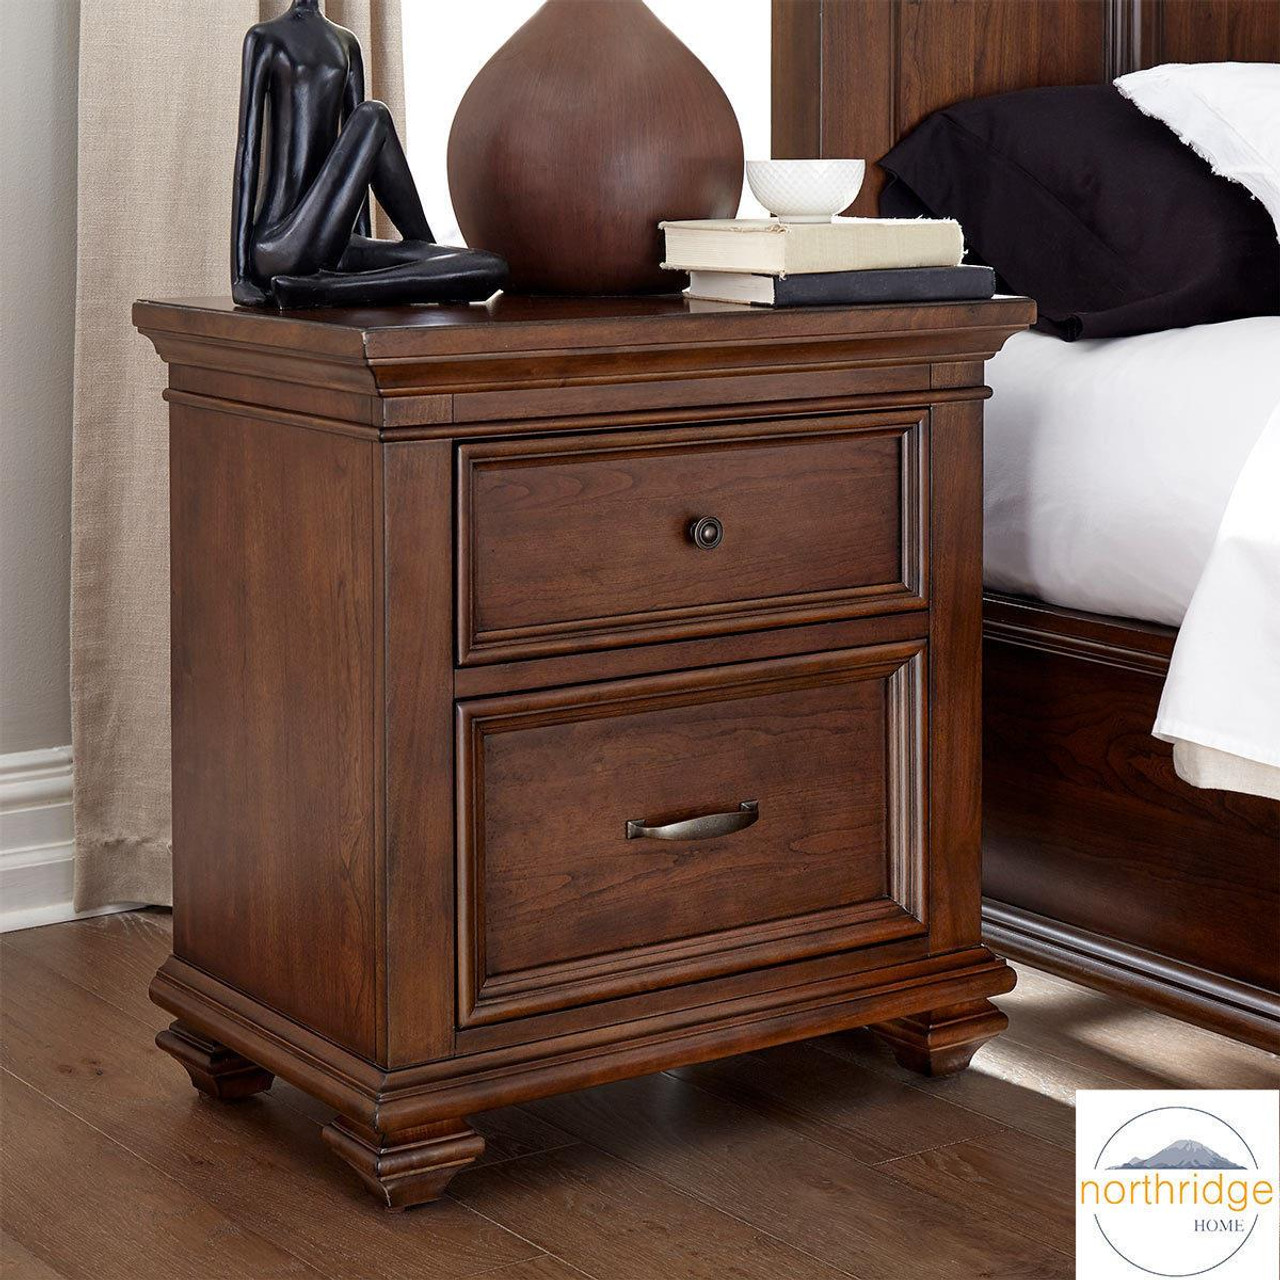 northridge conner nightstand bedside table 2 storage drawers chest dark wood